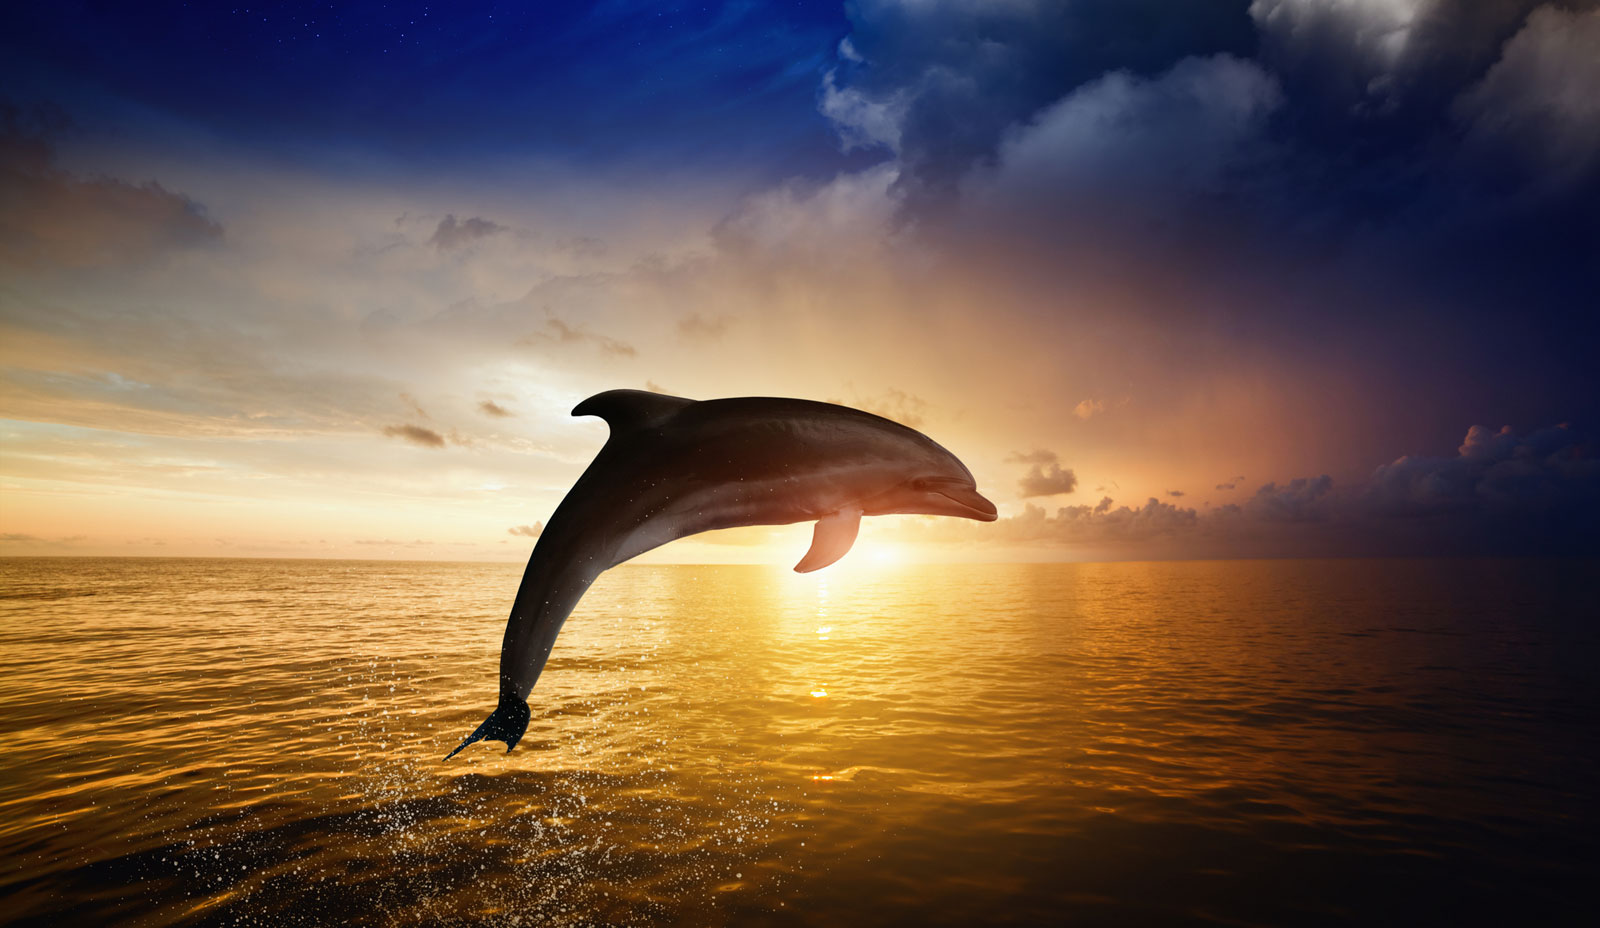 Symbolic Orca Whale Meaning On Whats Your Sign